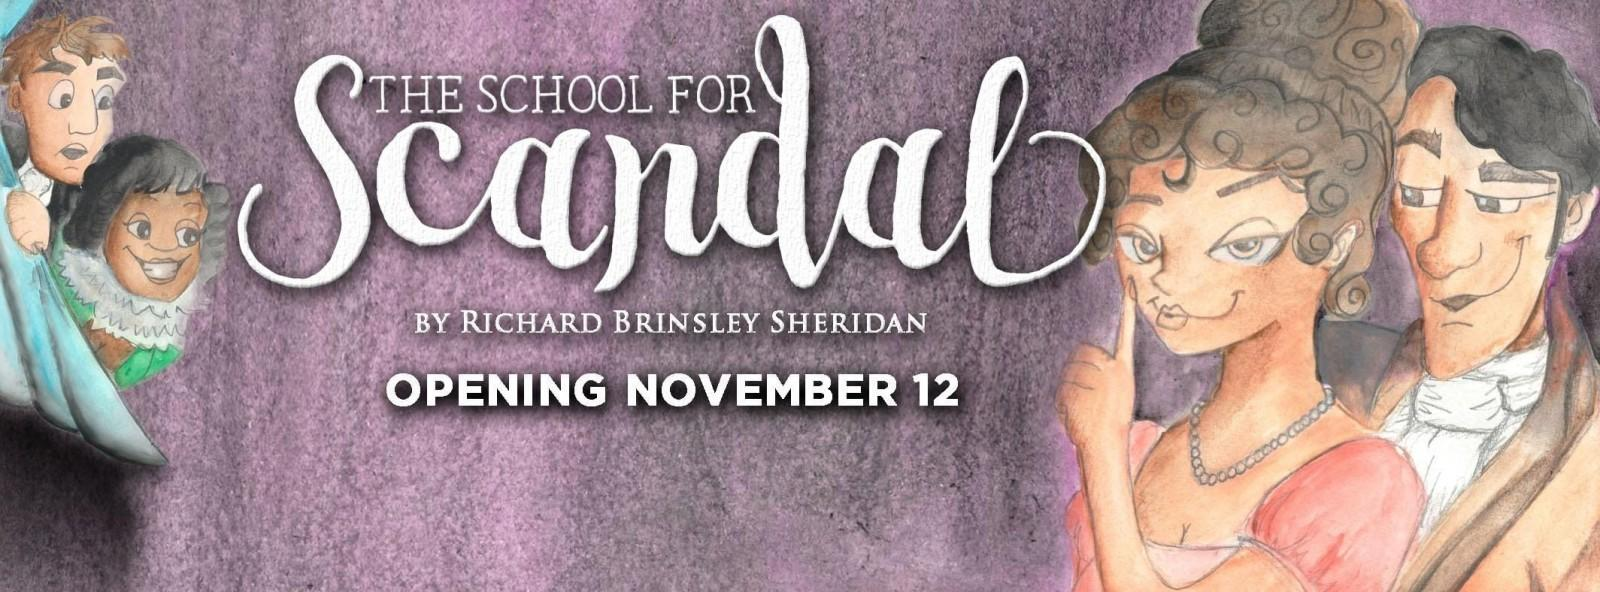 Theatre Wesleyan's The School for Scandal offers a classic tale about gossip